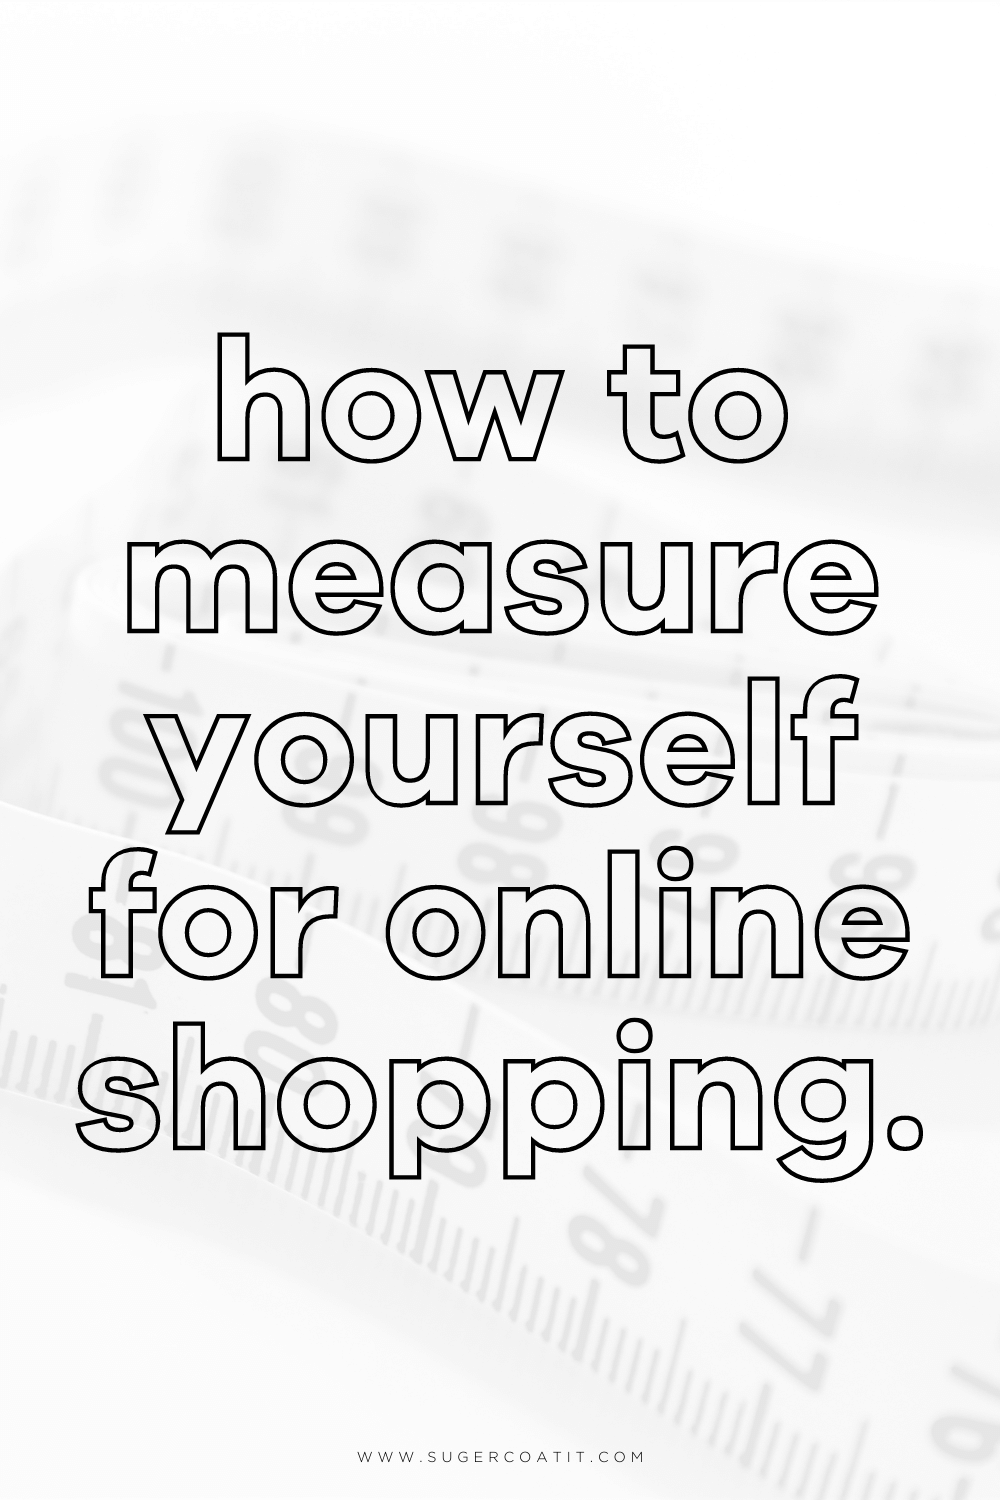 Measuring yourself for online shopping - Suger Coat It